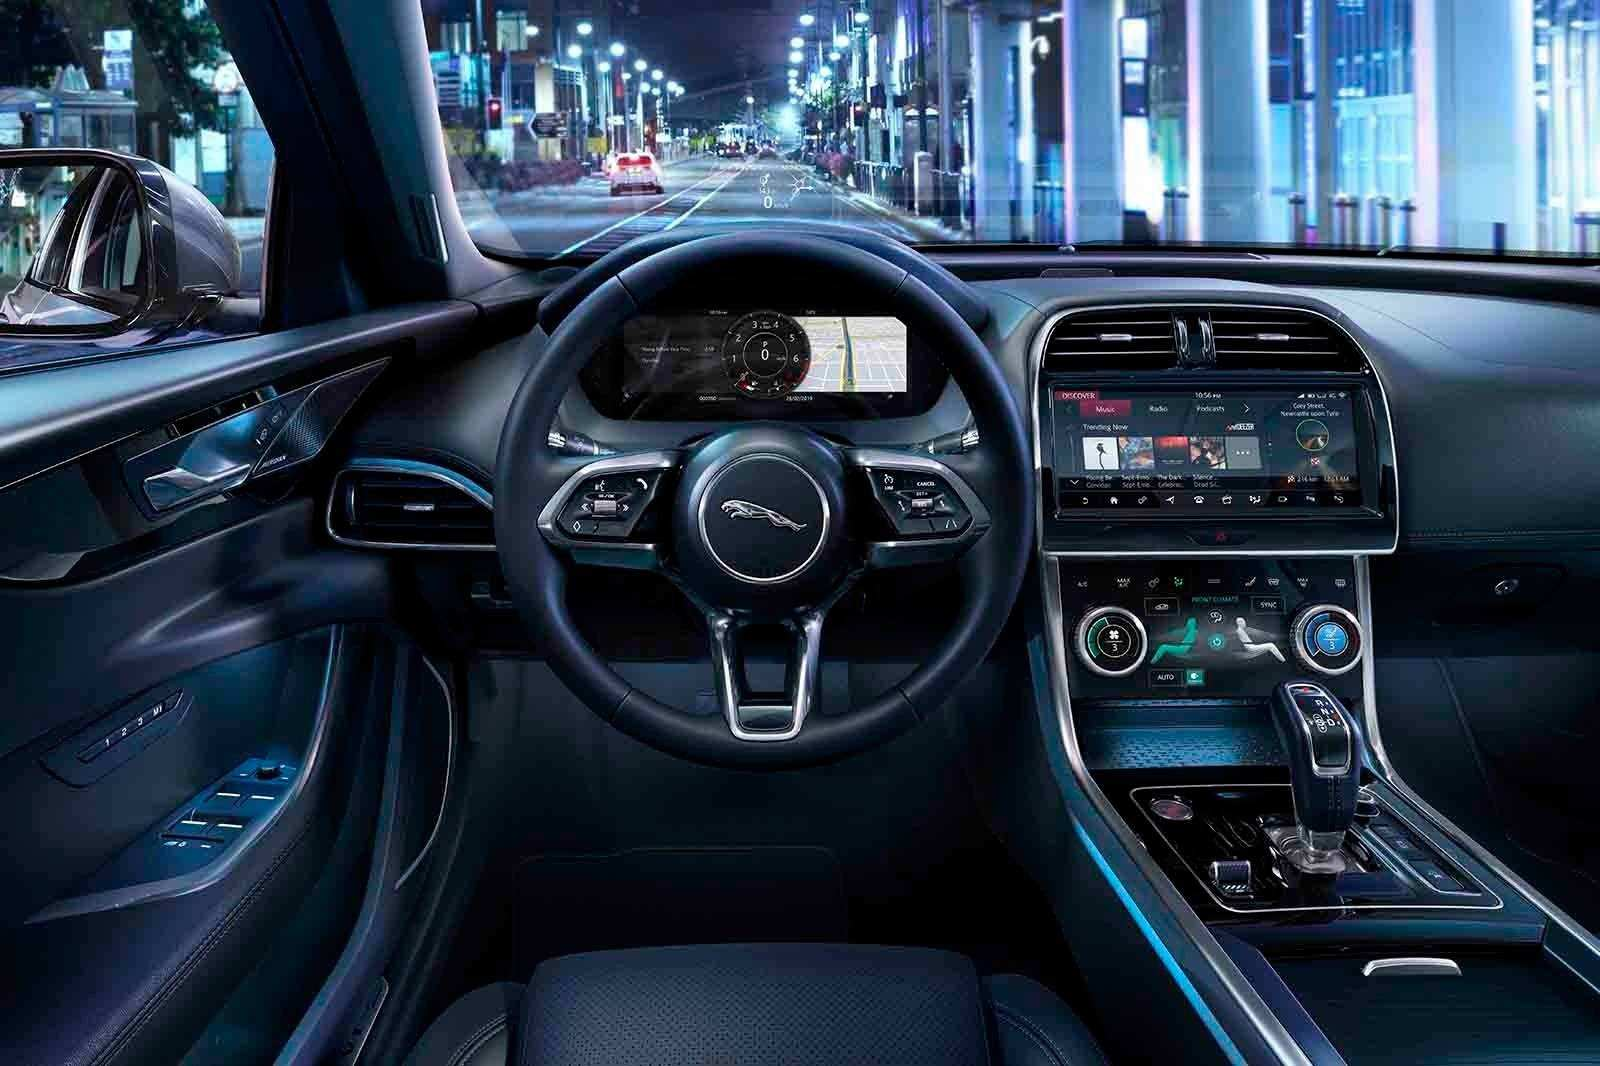 45 New Jaguar Xe 2020 Release Date Release Date with Jaguar Xe 2020 Release Date